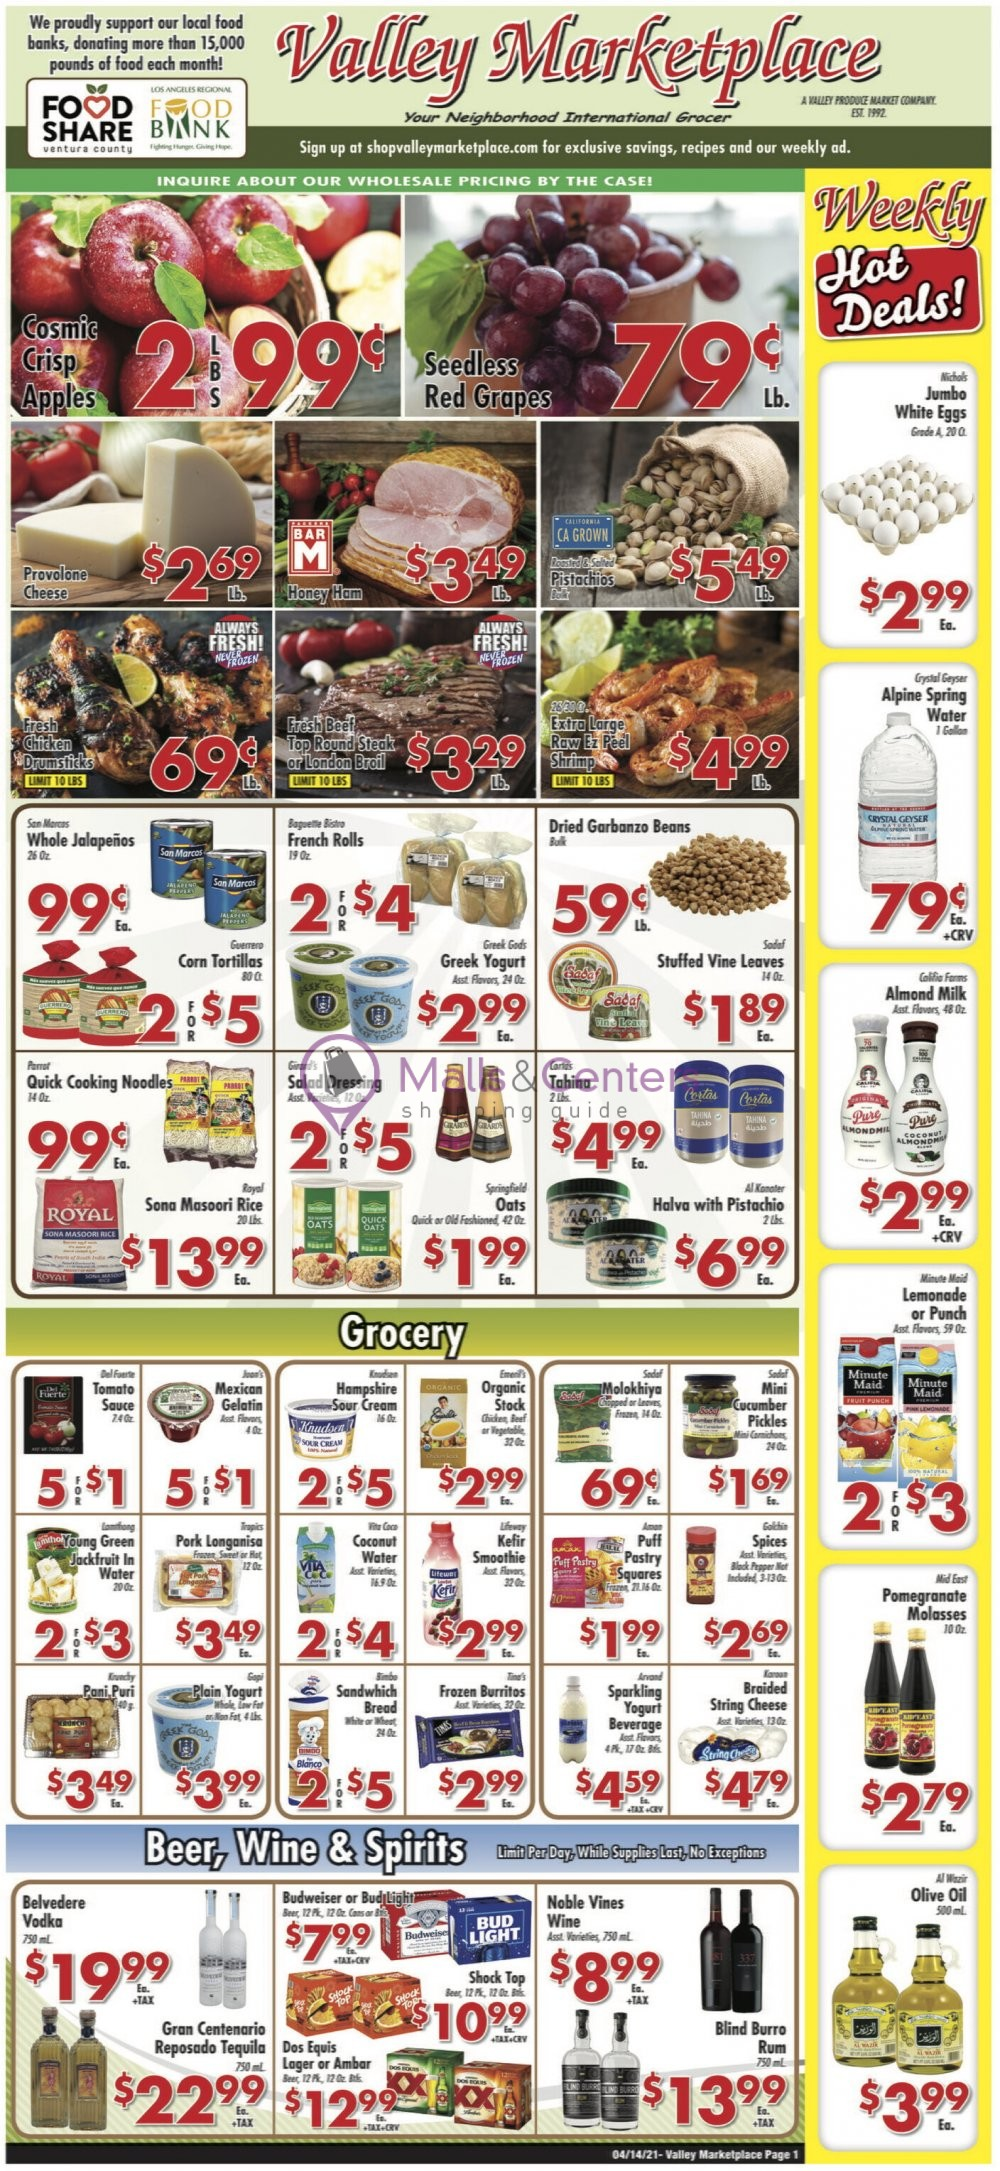 weekly ads Valley Marketplace - page 1 - mallscenters.com